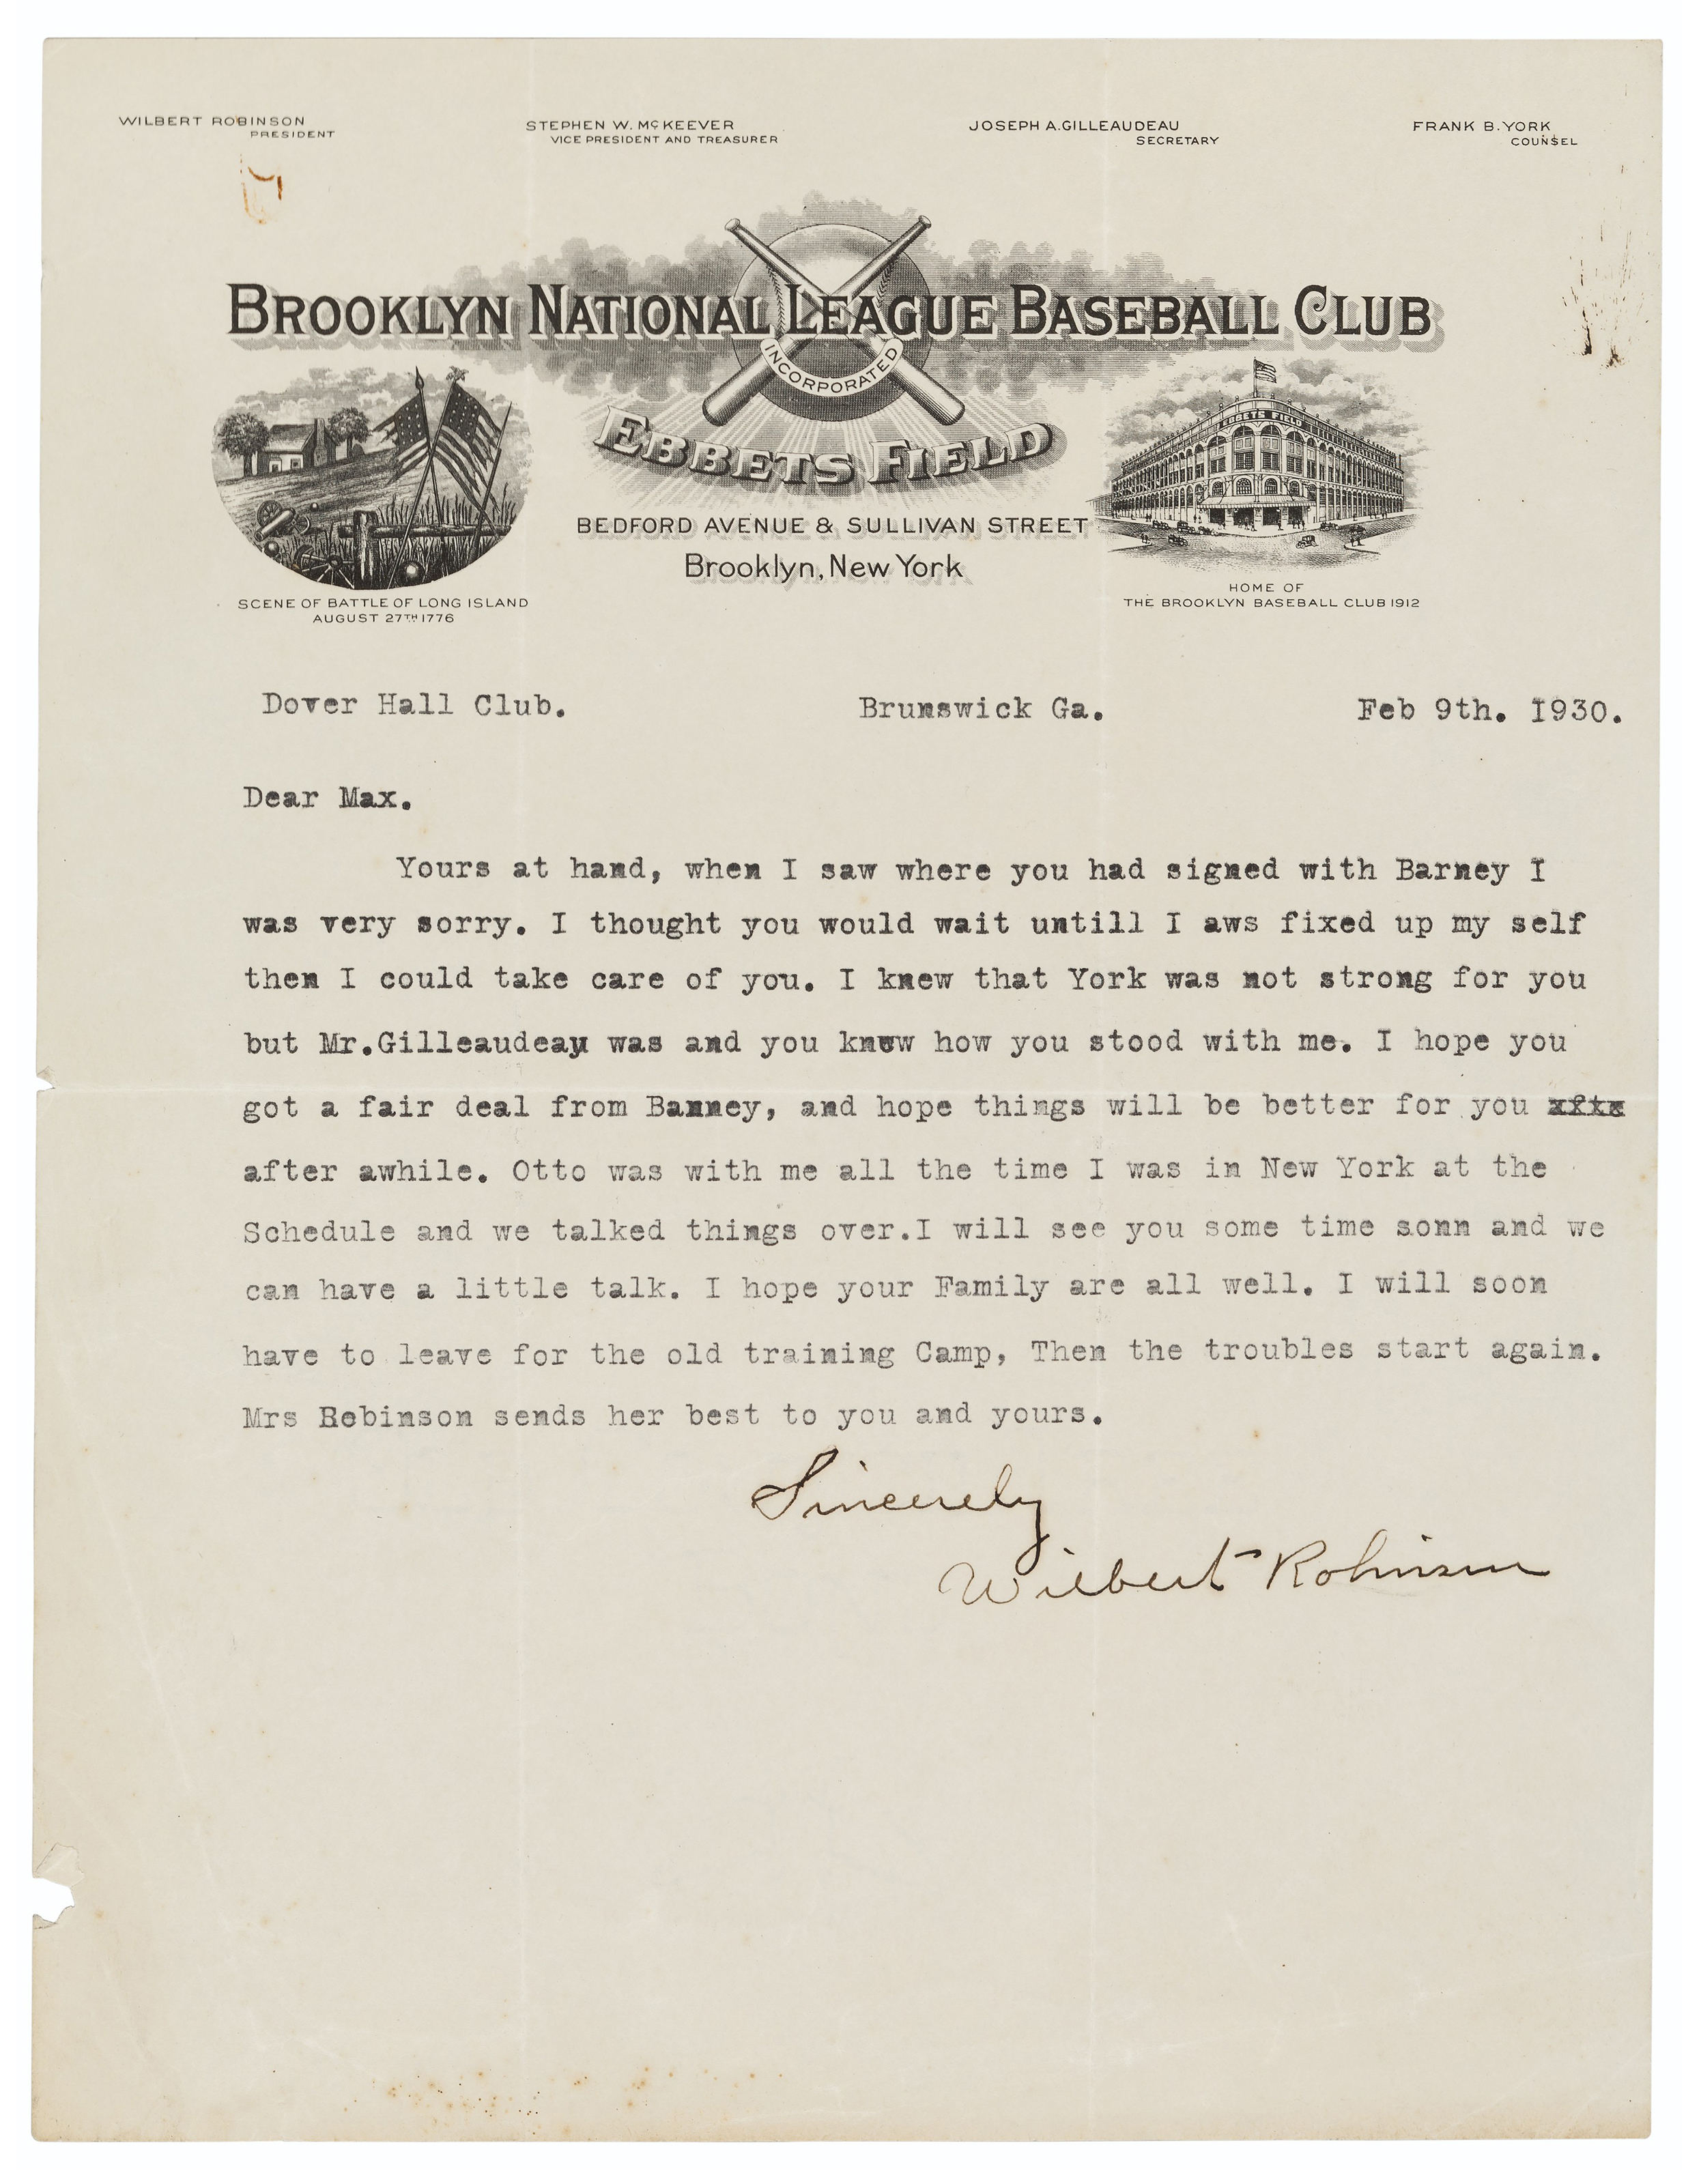 WILBERT ROBINSON SIGNED LETTER